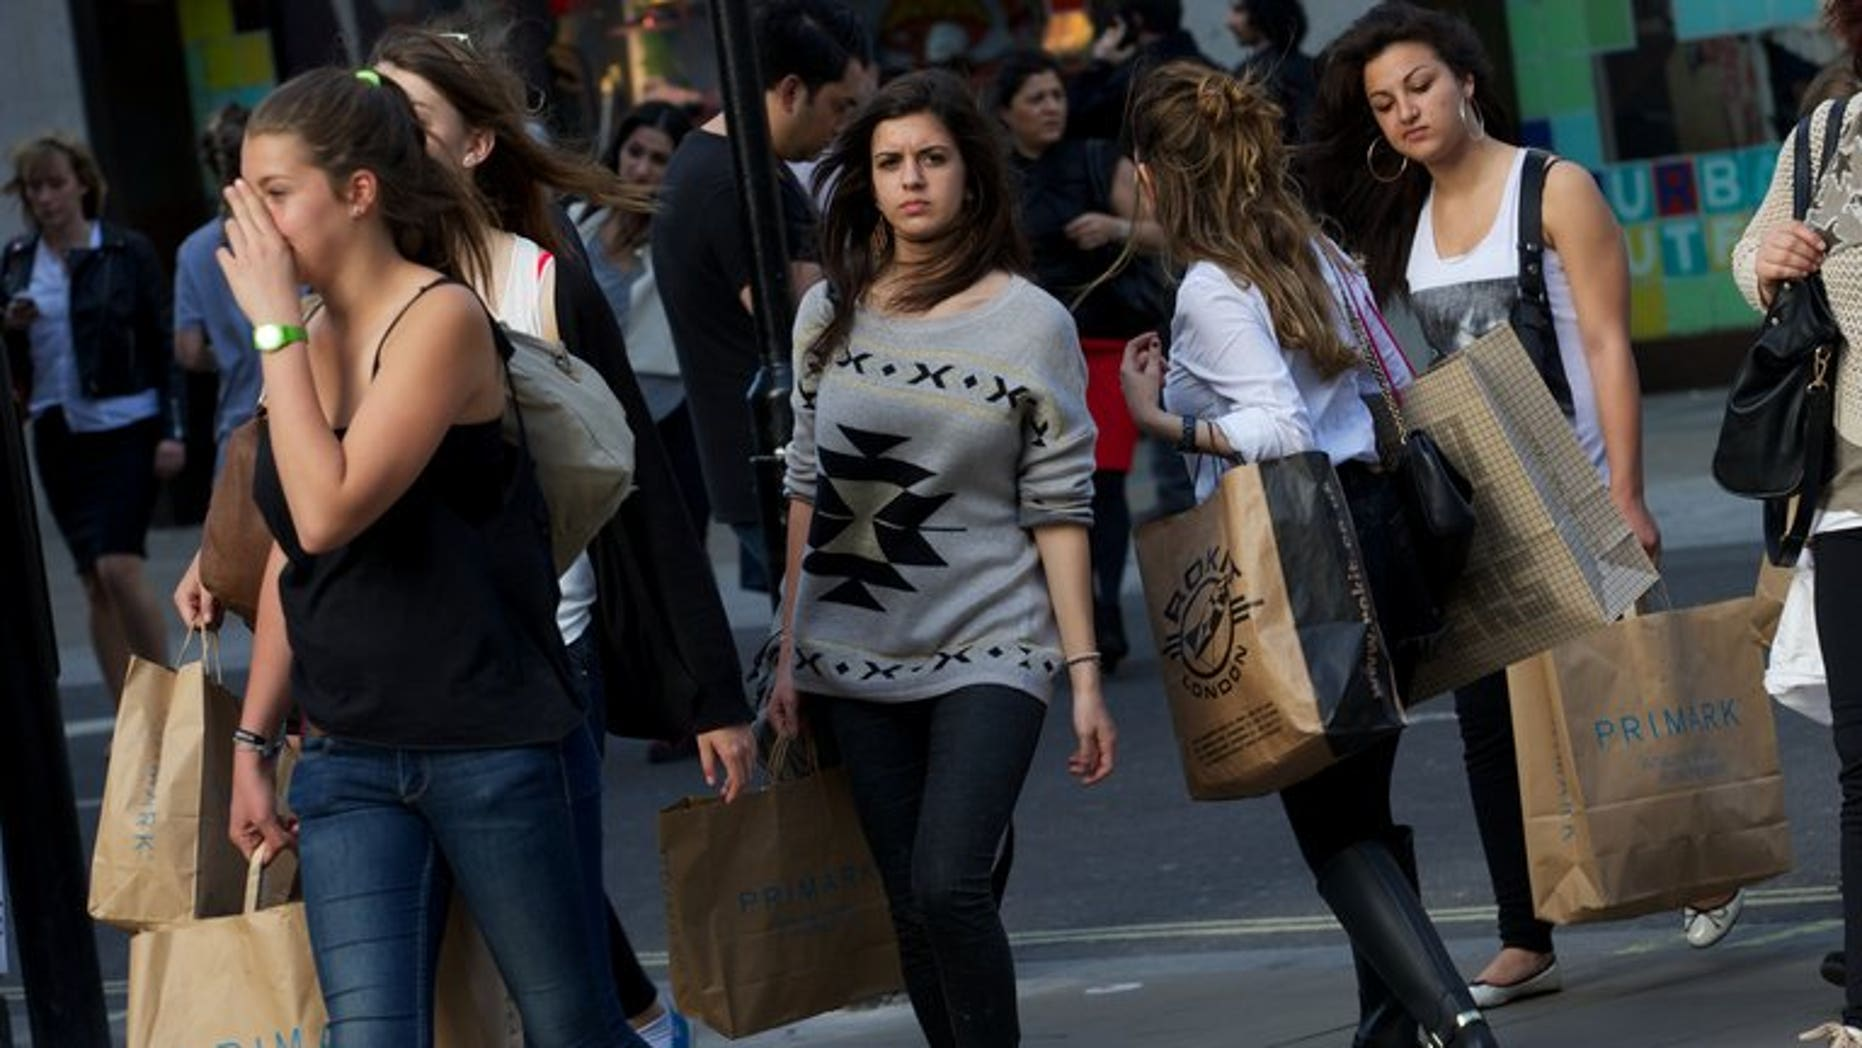 """Shoppers walk along Oxford Street on April 25, 2013. Britain faces a """"20-year generational battle"""" to restore financial stability and """"at least"""" four more years of austerity measures, the country's top civil servant warned Tuesday."""